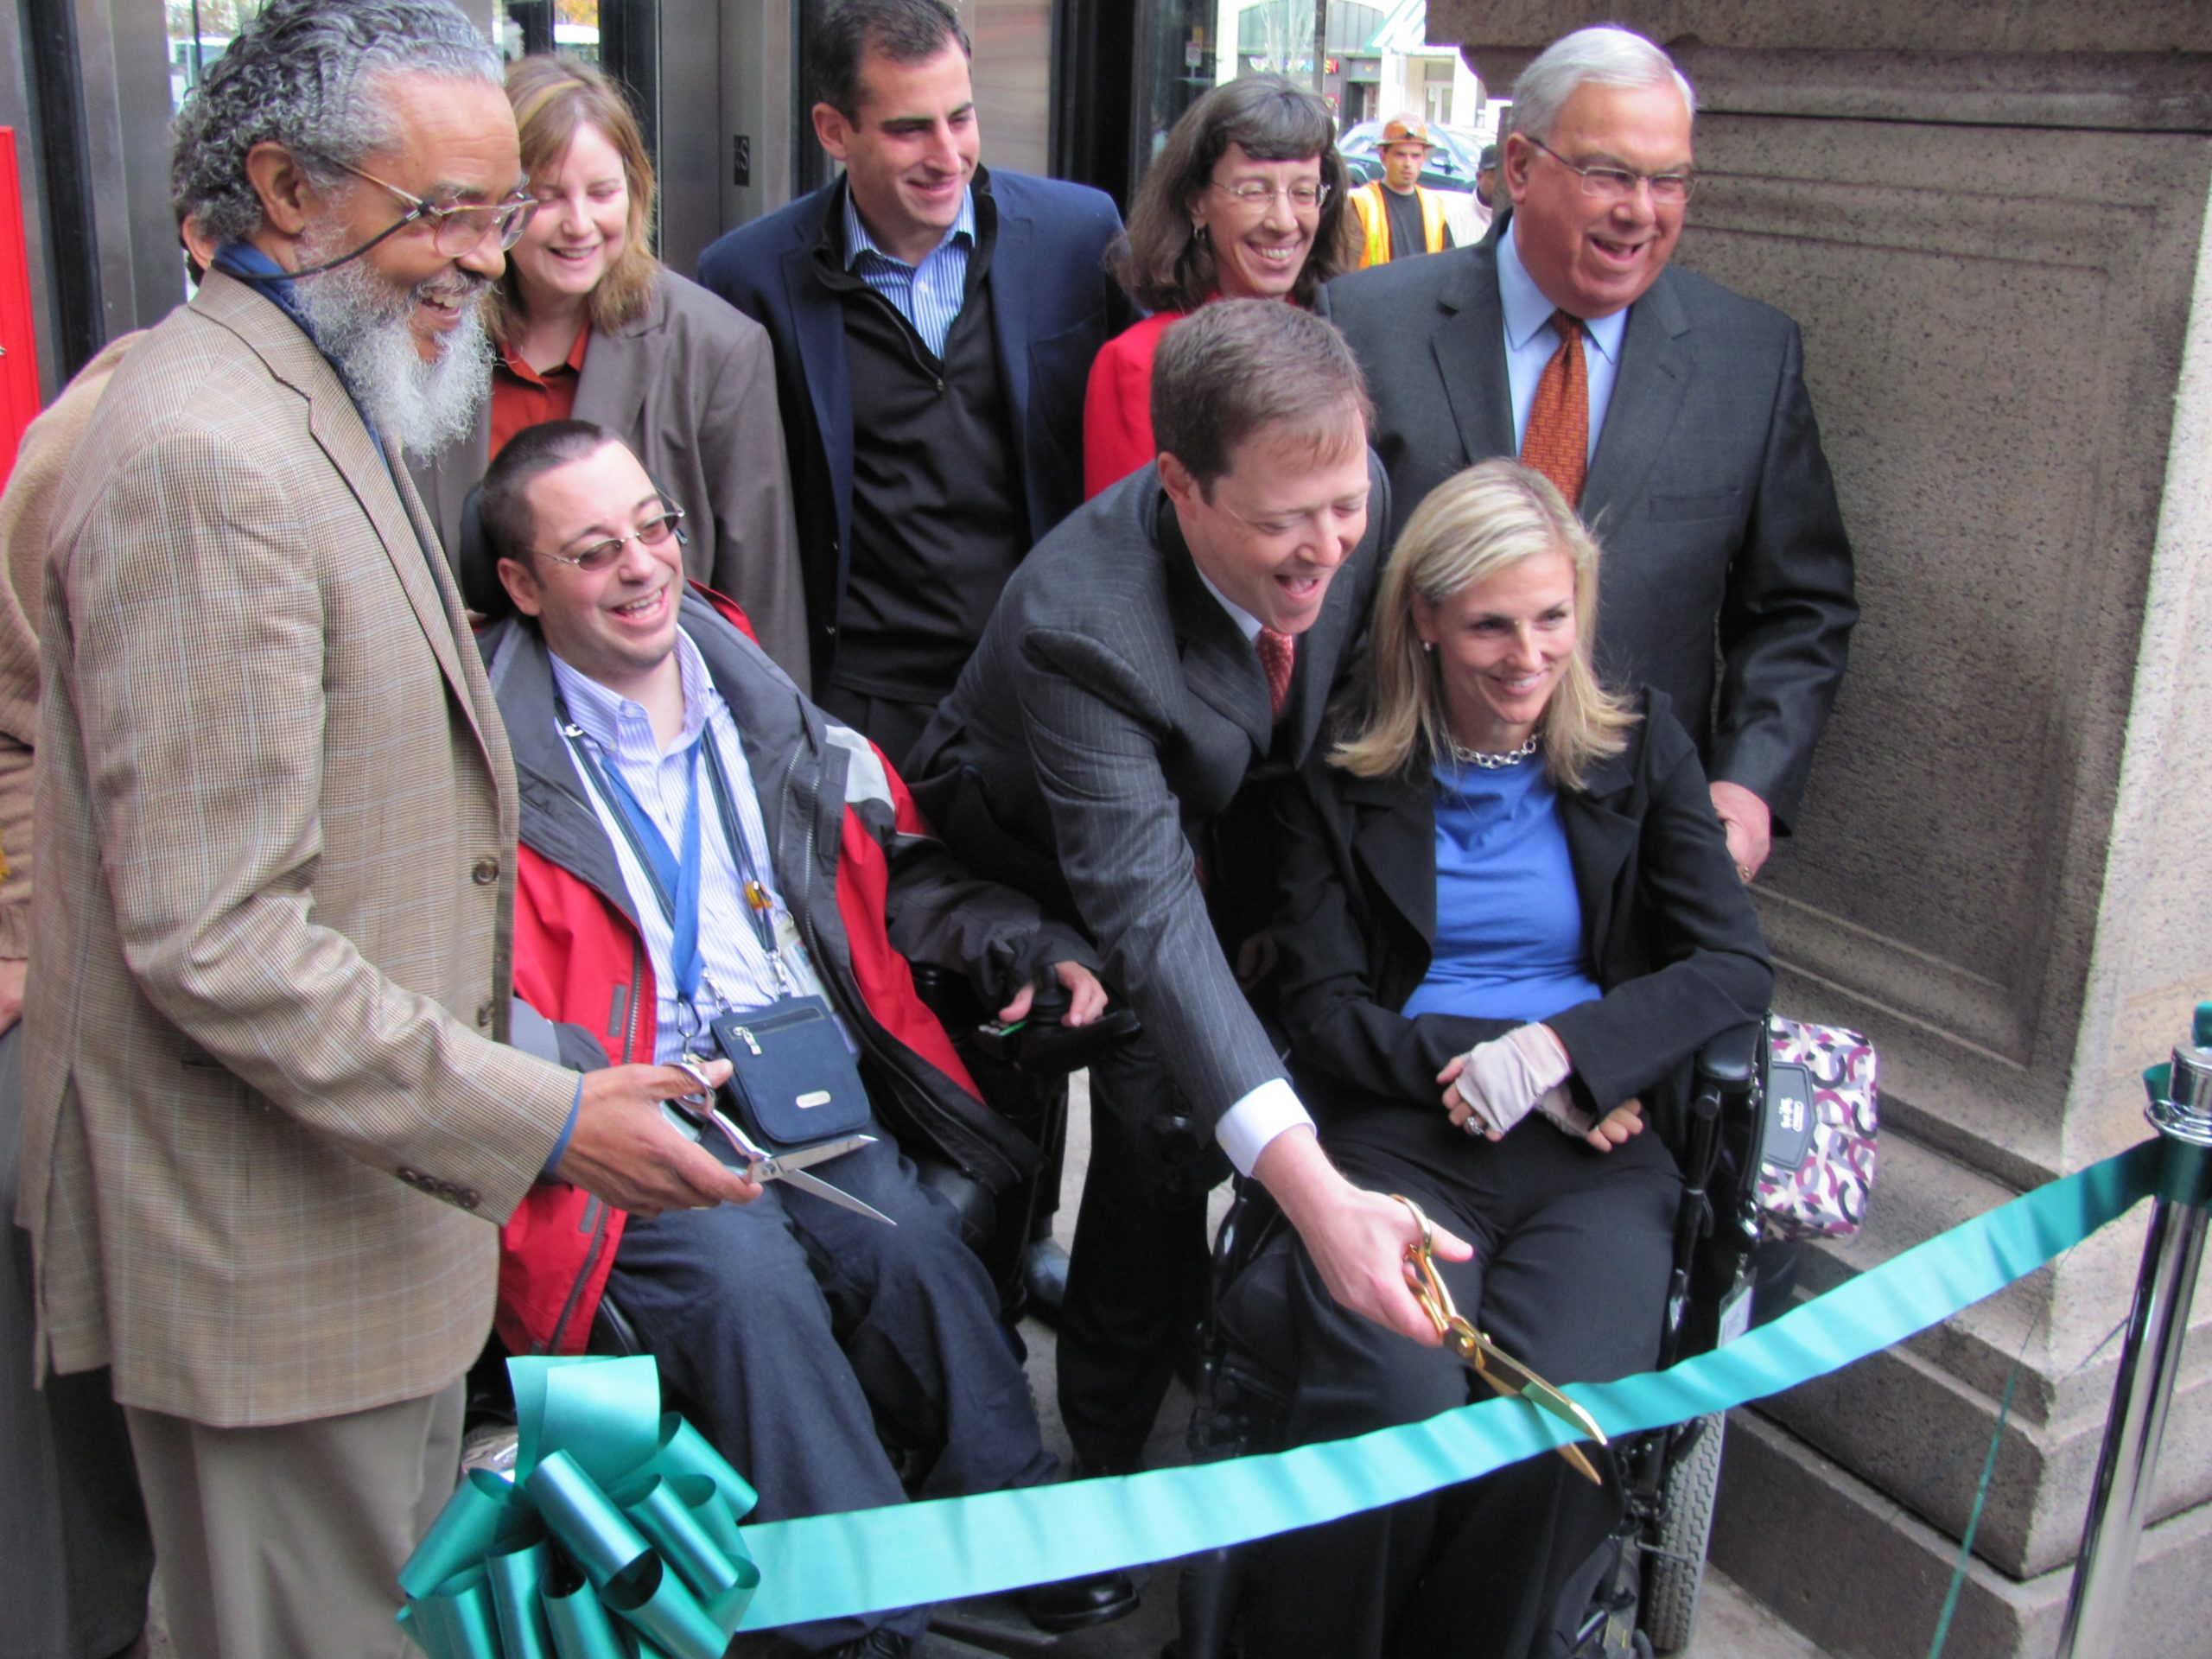 A group of predominantely white people at a ribbon cutting